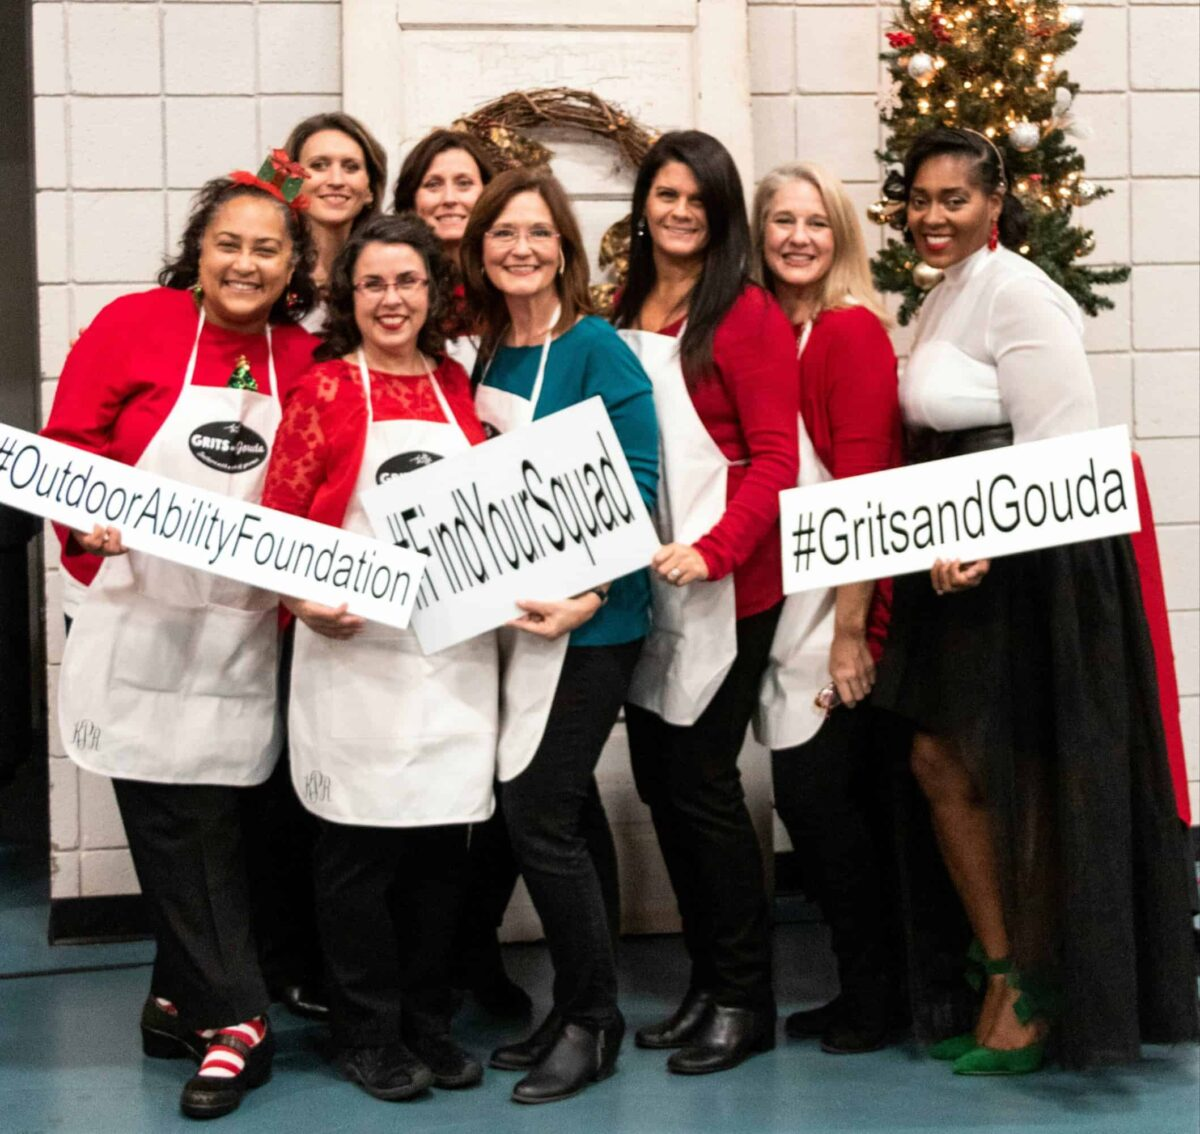 8 women wearing white aprons by Christmas tree holding fundraiser signs